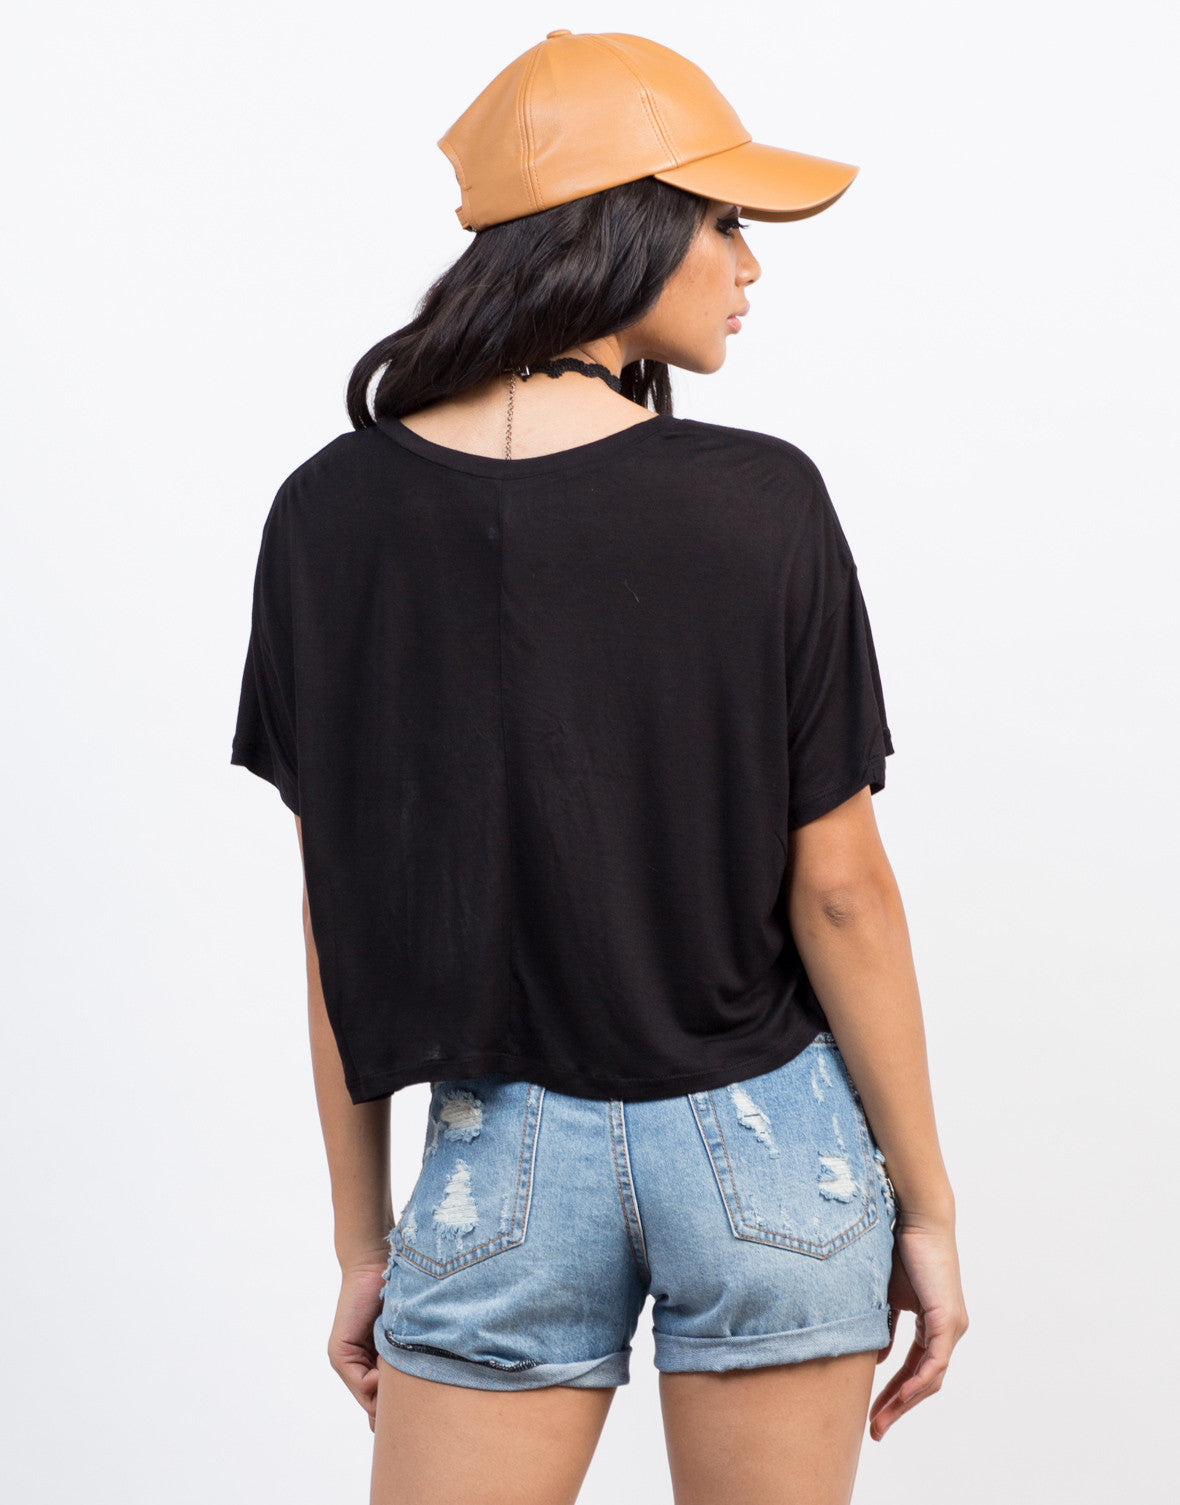 Back View of Light Knit Cropped Tee